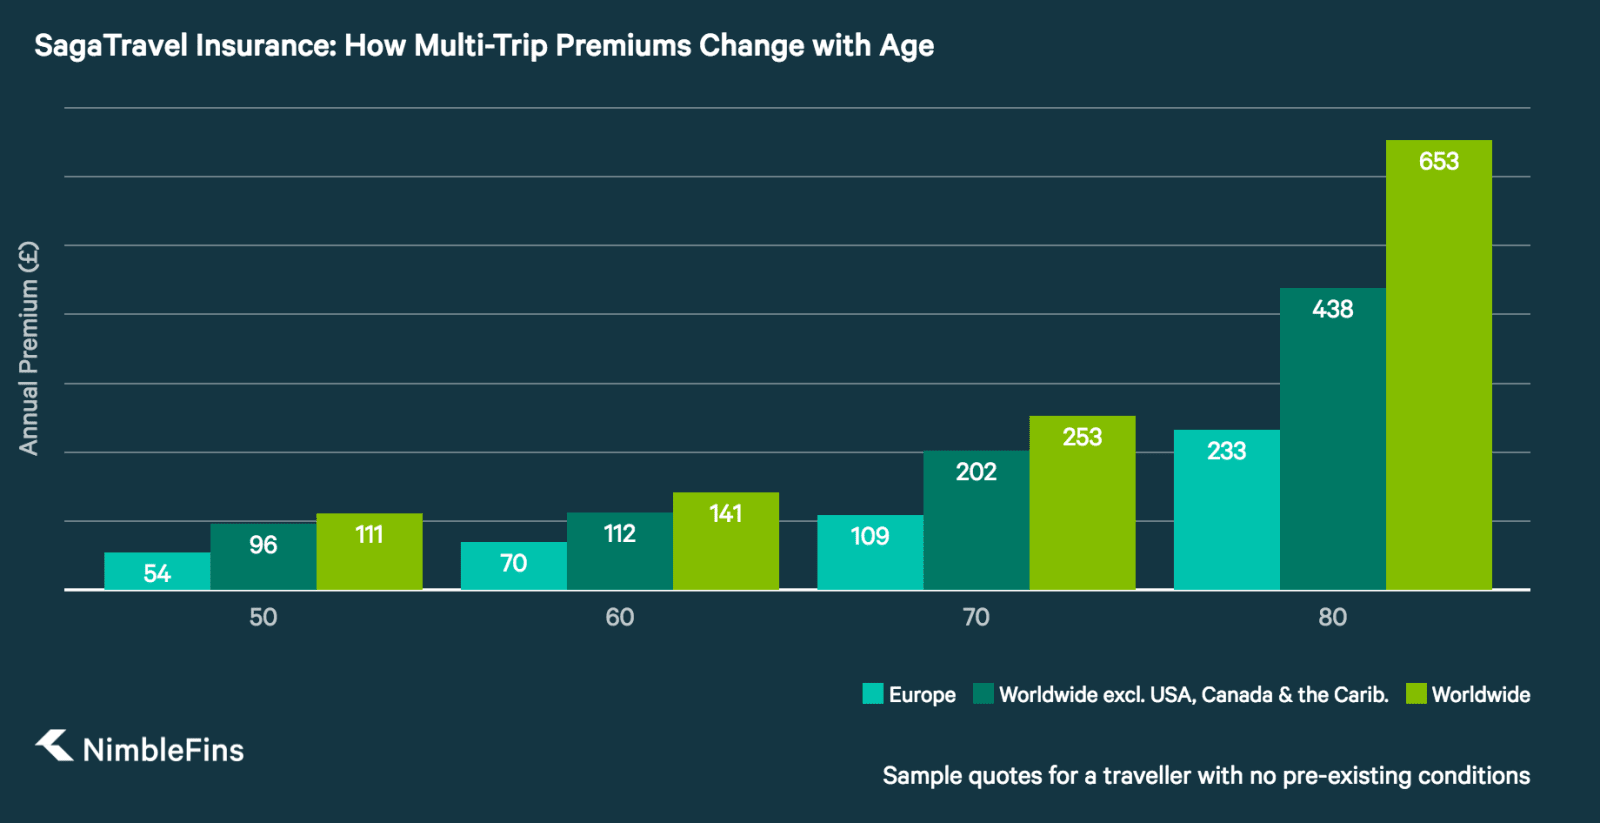 chart showing Saga multi-trip travel insurance prices for those 50, 60, 70 and 80 years old